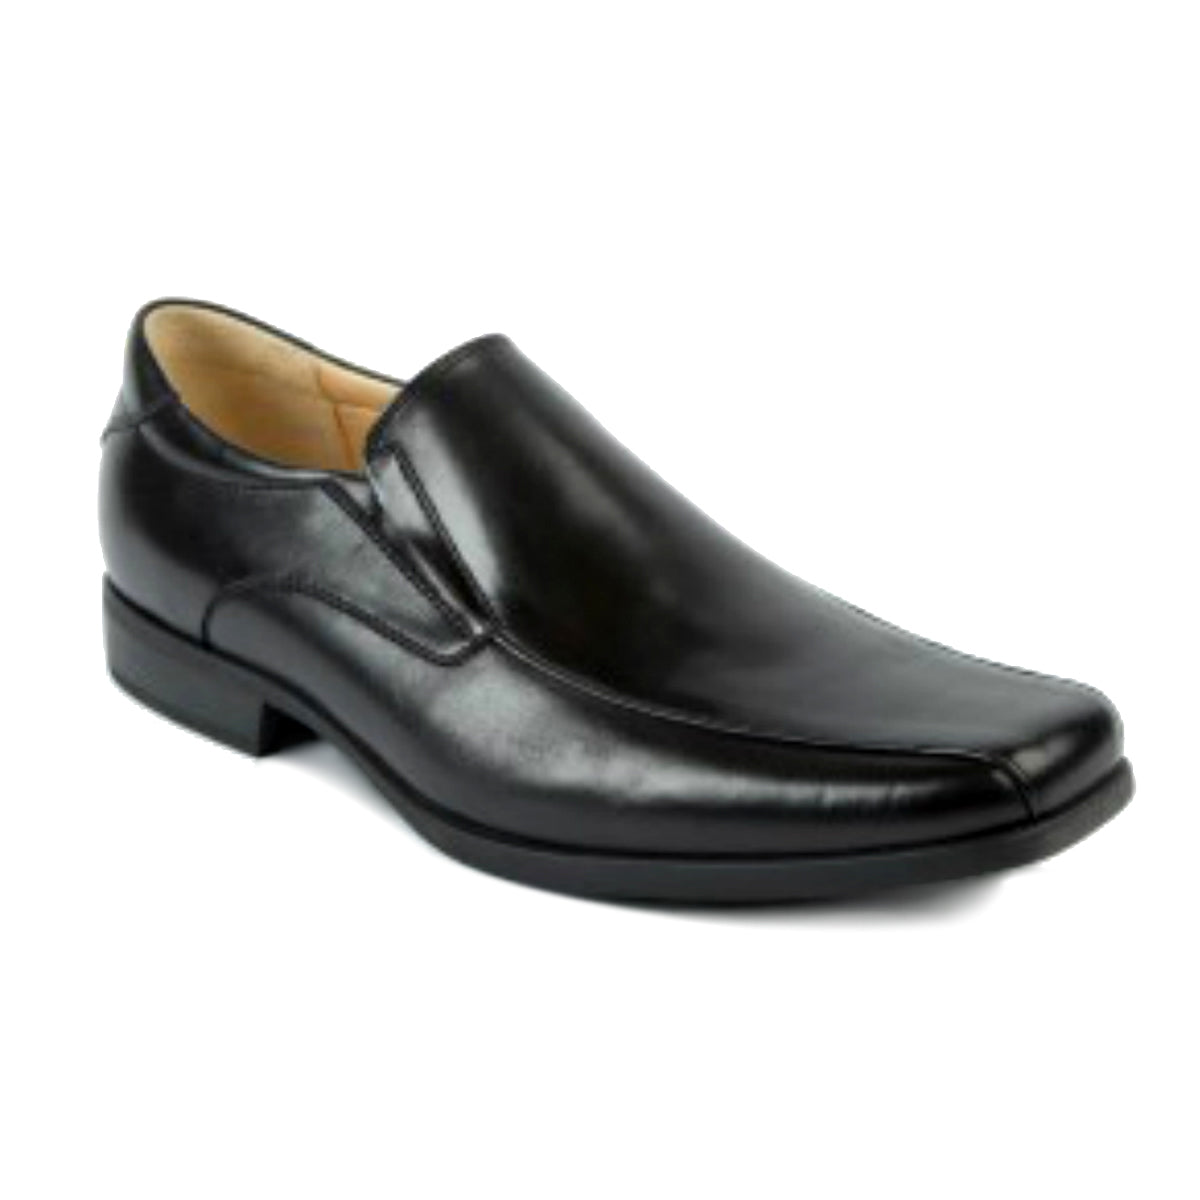 Welling Leather Slip On